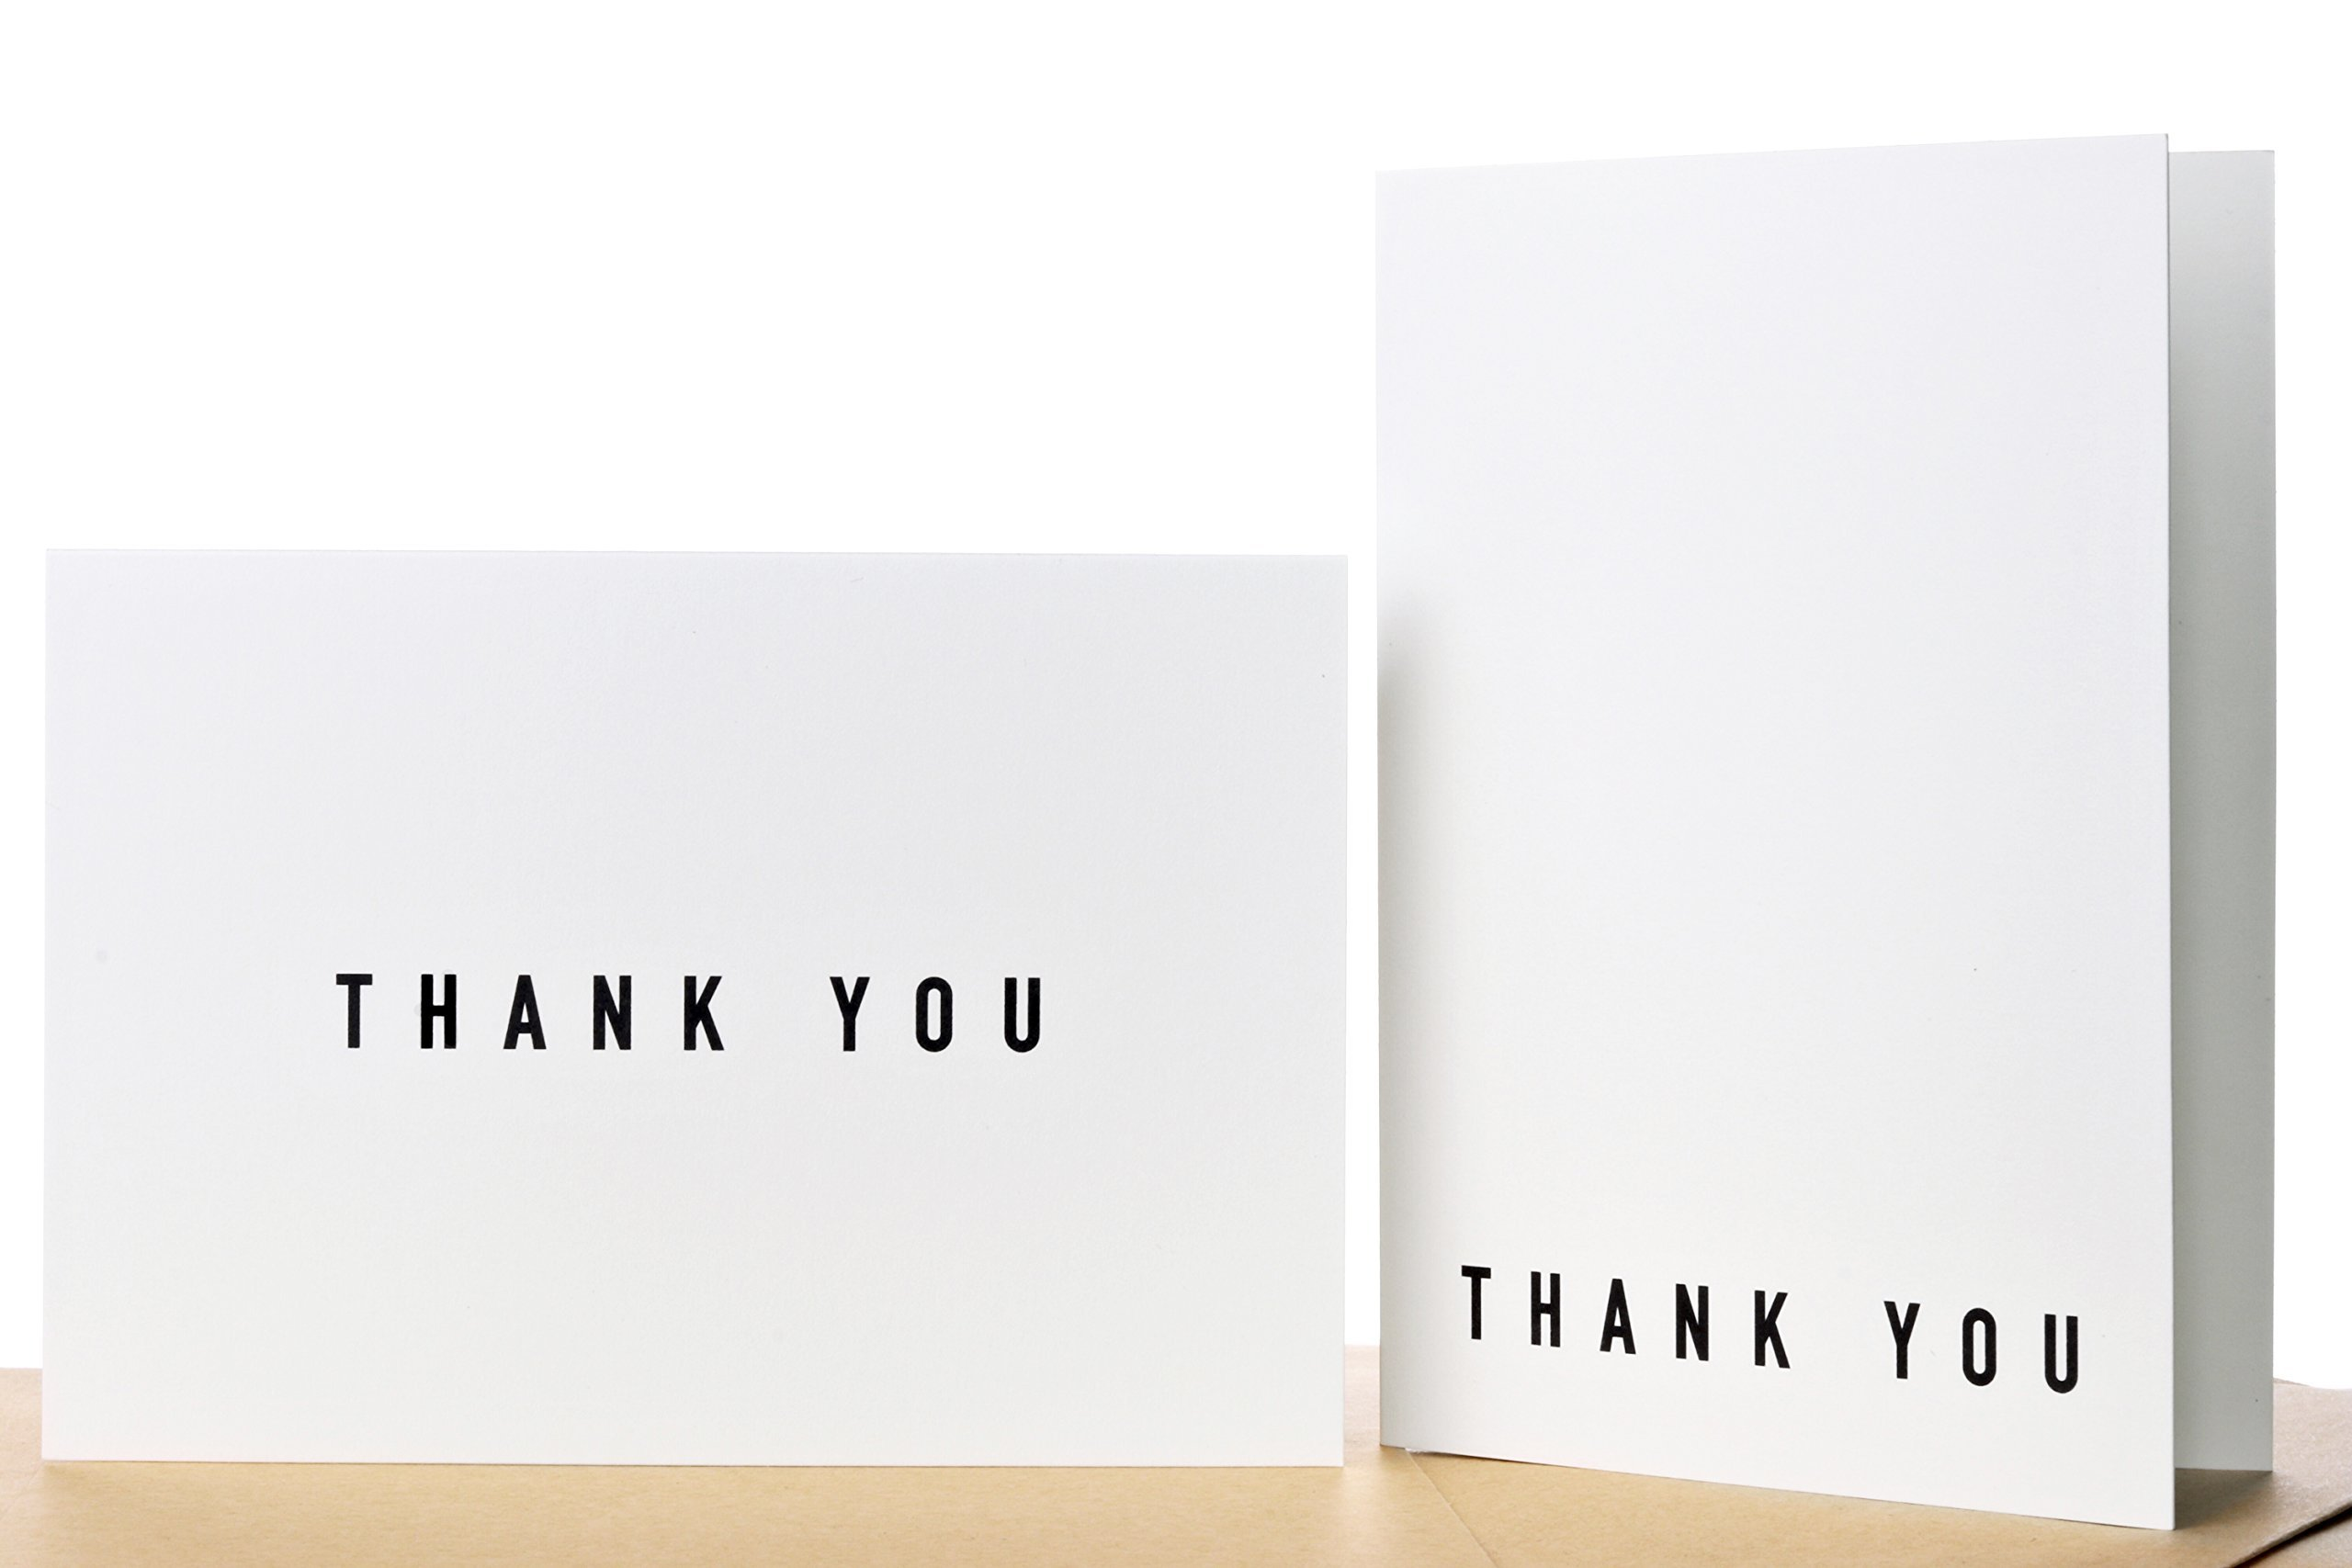 100 Thank You Cards Bulk With Self-Seal Envelopes - 2 Designs of Elegant Modern Thank You Cards For Any Occasion - Wedding, Engagement, Funeral, Graduation, Business